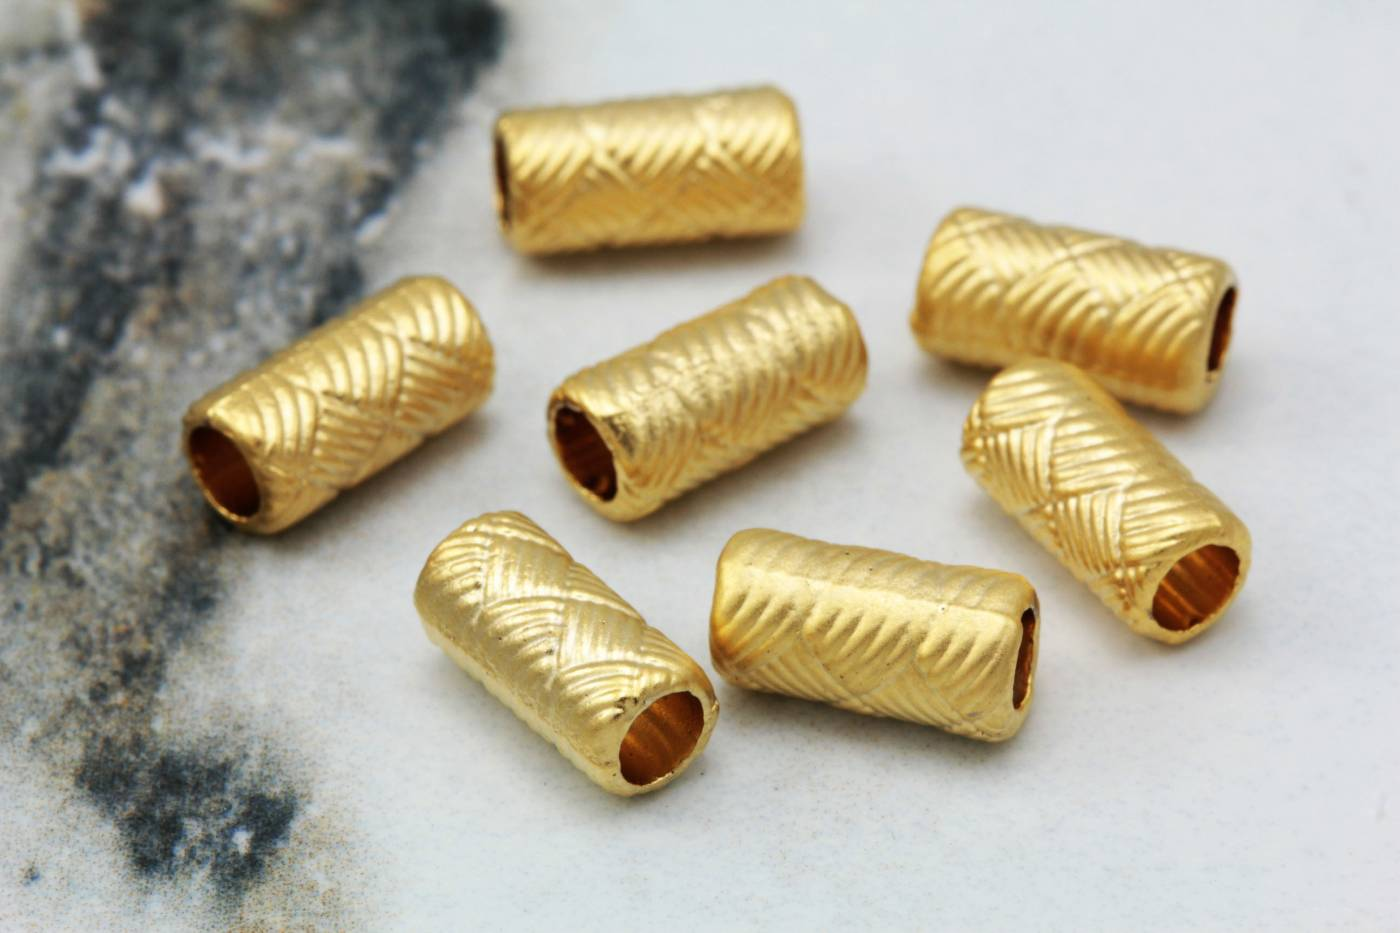 gold-plated-metal-tube-spacer-beads.jpg